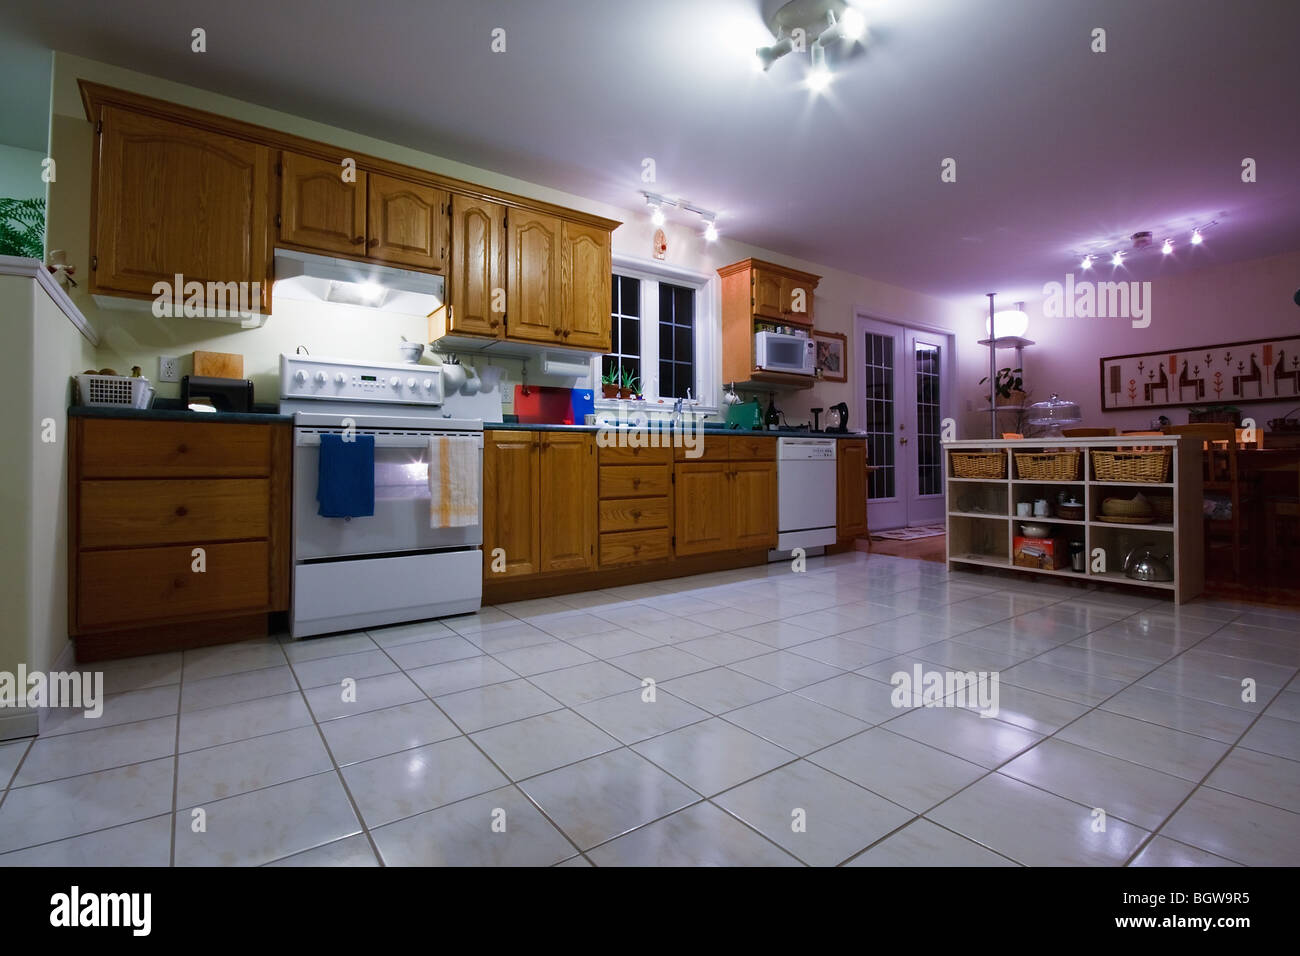 A bright Canadian kitchen lighted with energy saving compact fluorescent bulbs - Stock Image